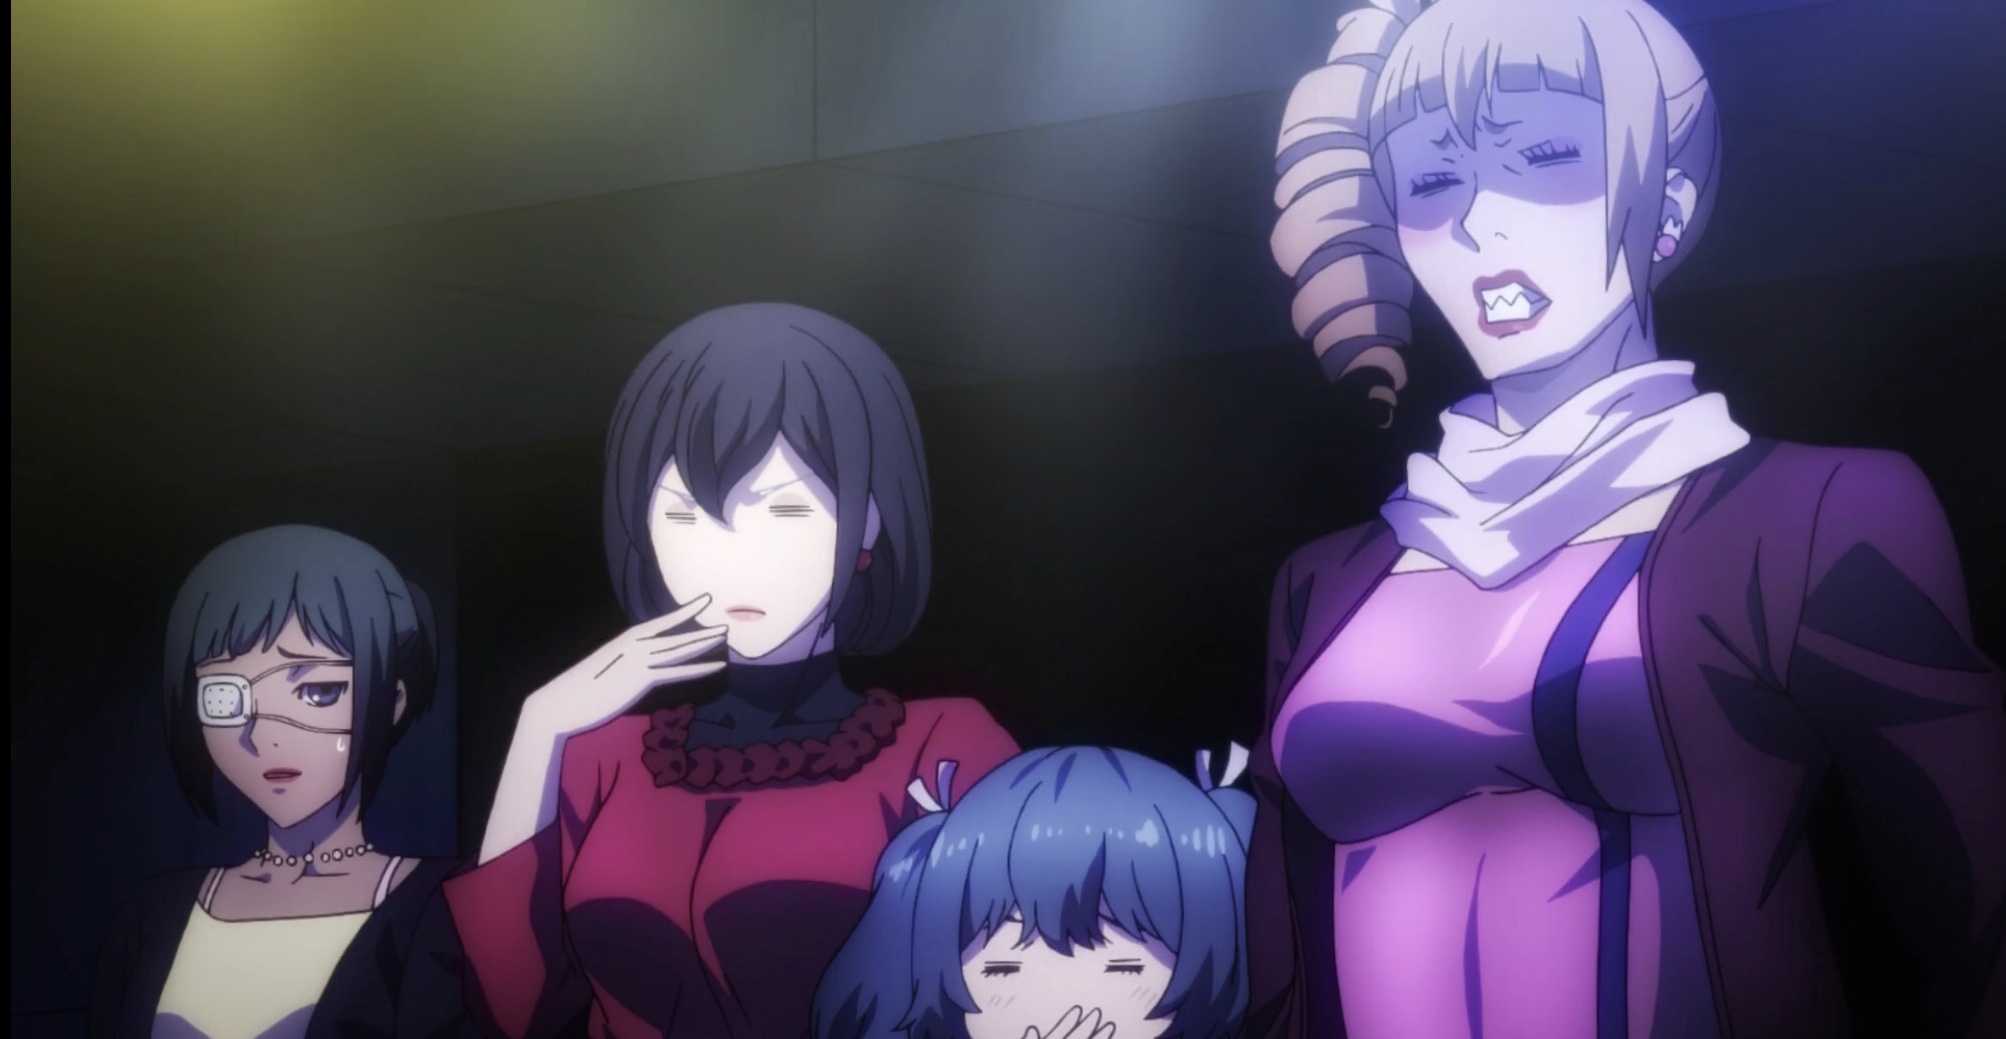 Tokyo Ghoul: re Episodes 1-3 (Review) - The Geekly Grind